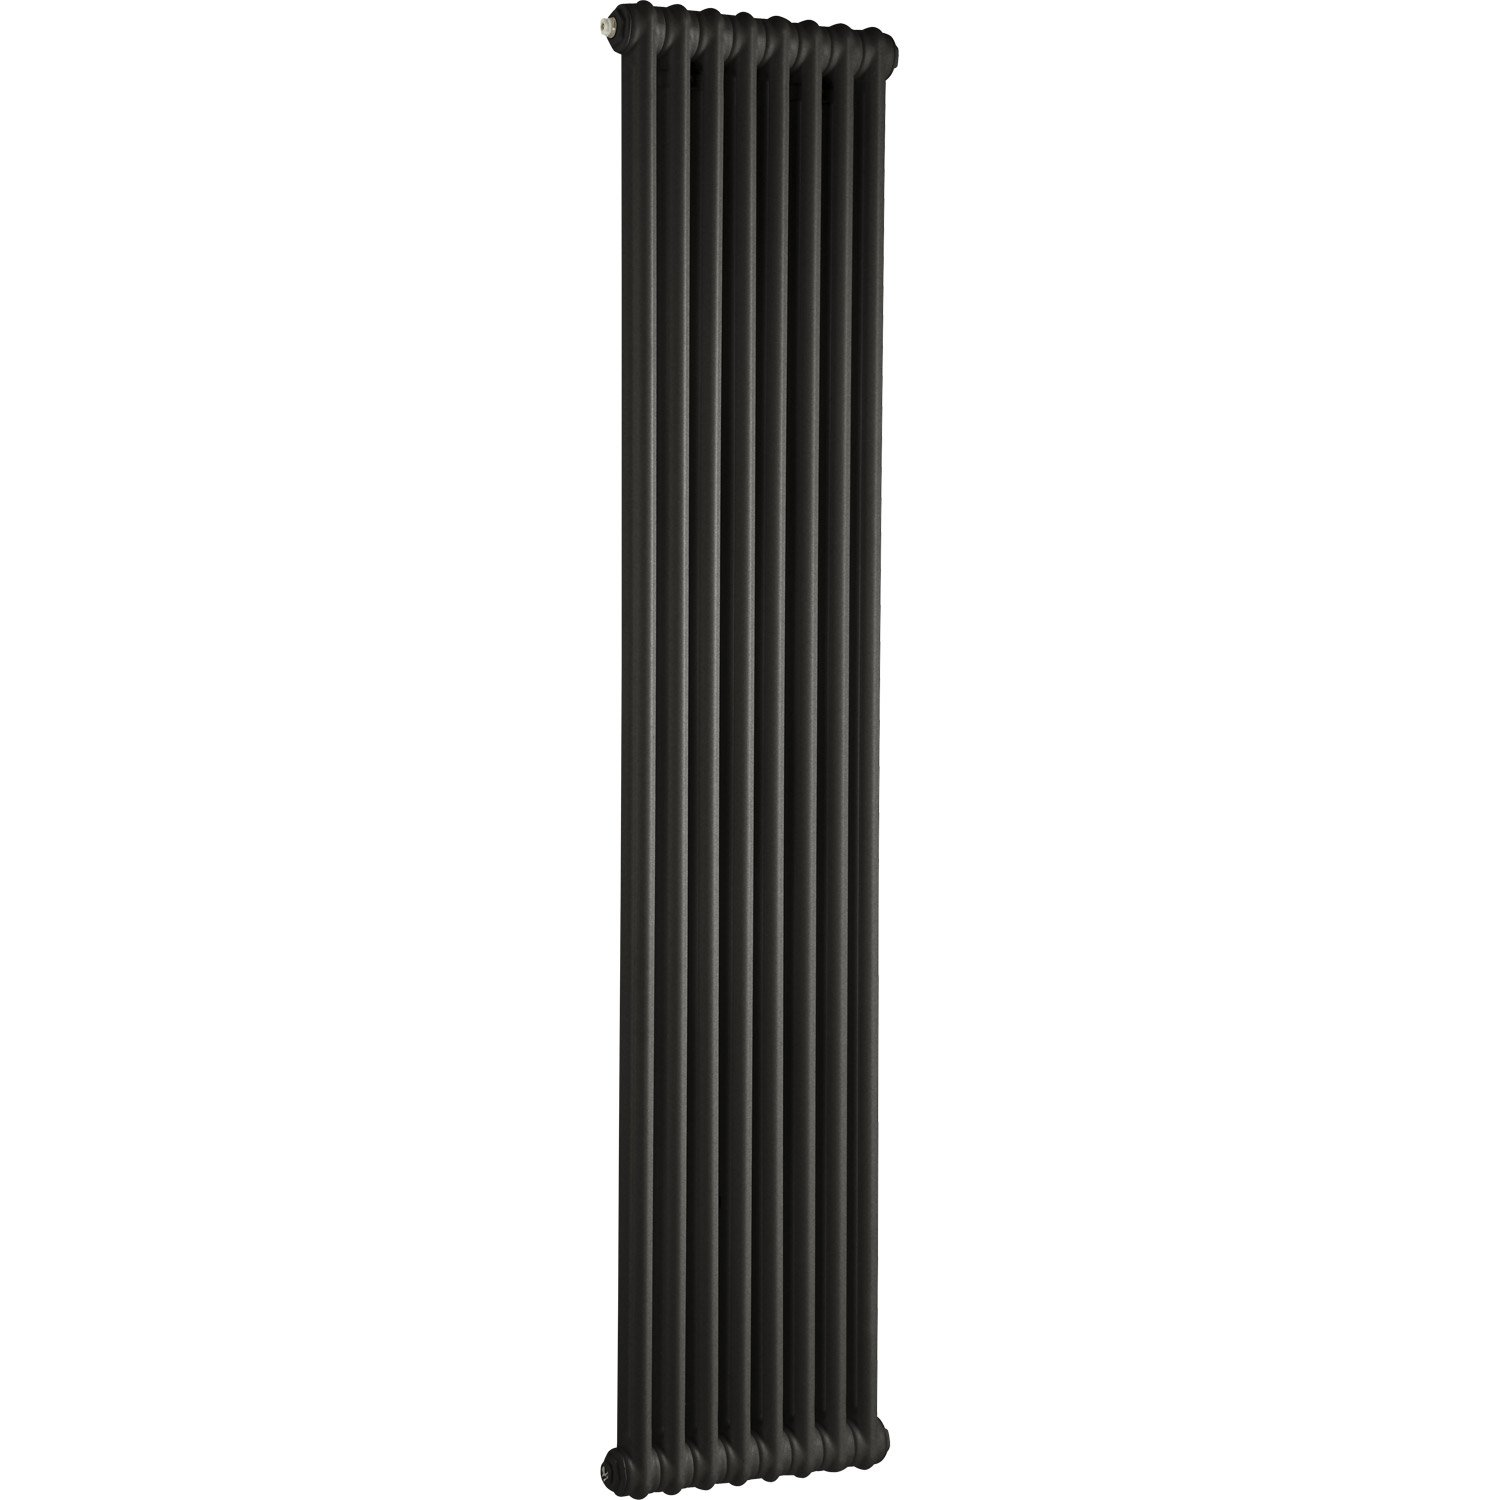 radiateur chauffage central tesi noir cm 994 w leroy merlin. Black Bedroom Furniture Sets. Home Design Ideas